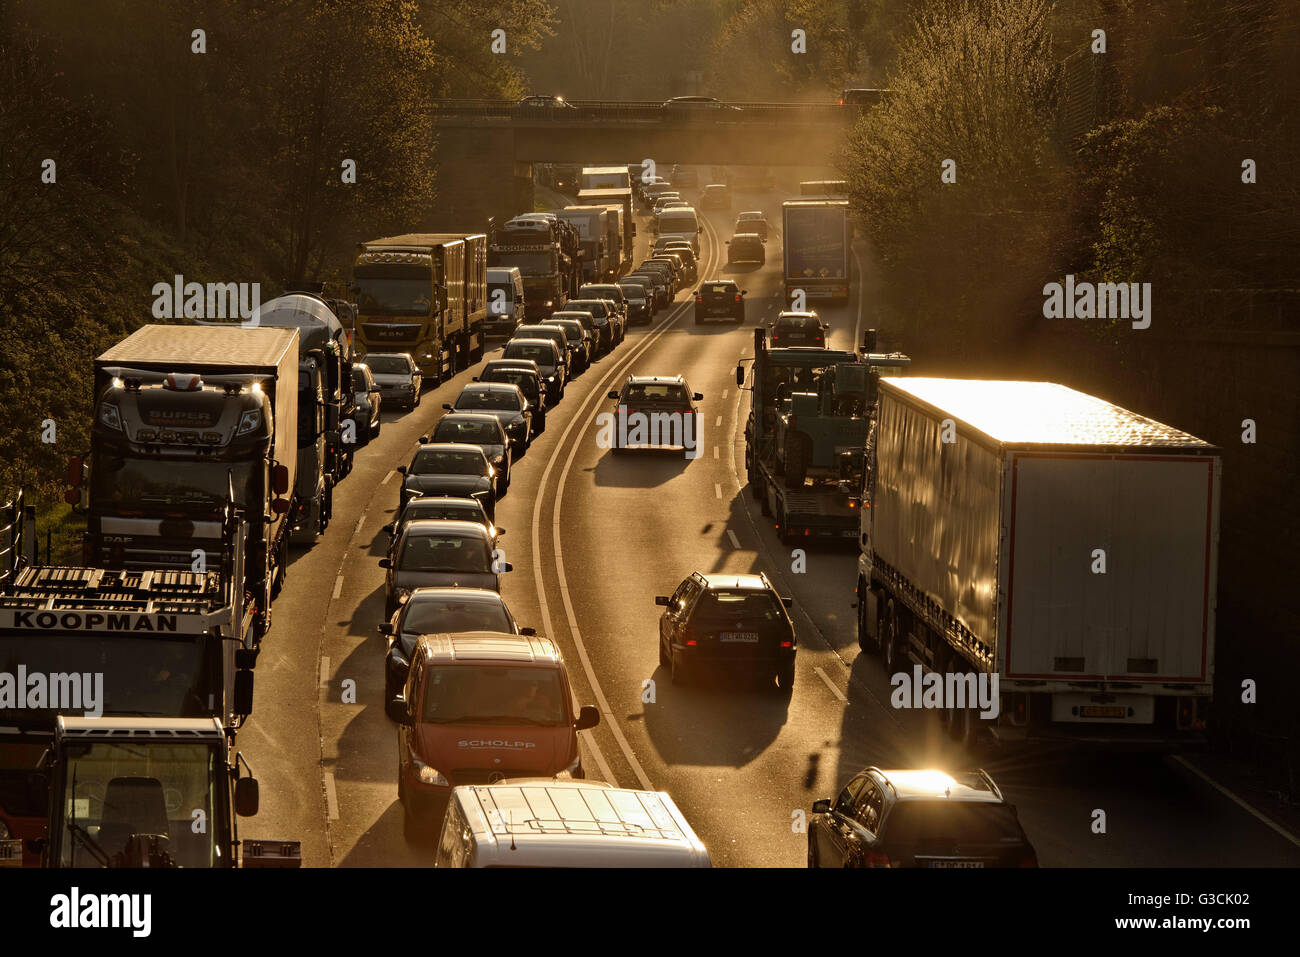 Traffic jam on the A 52 / B224, bottleneck to the highway A 2 in Gladbeck, Gladbeck, Ruhr area, North Rhine-Westphalia, - Stock Image